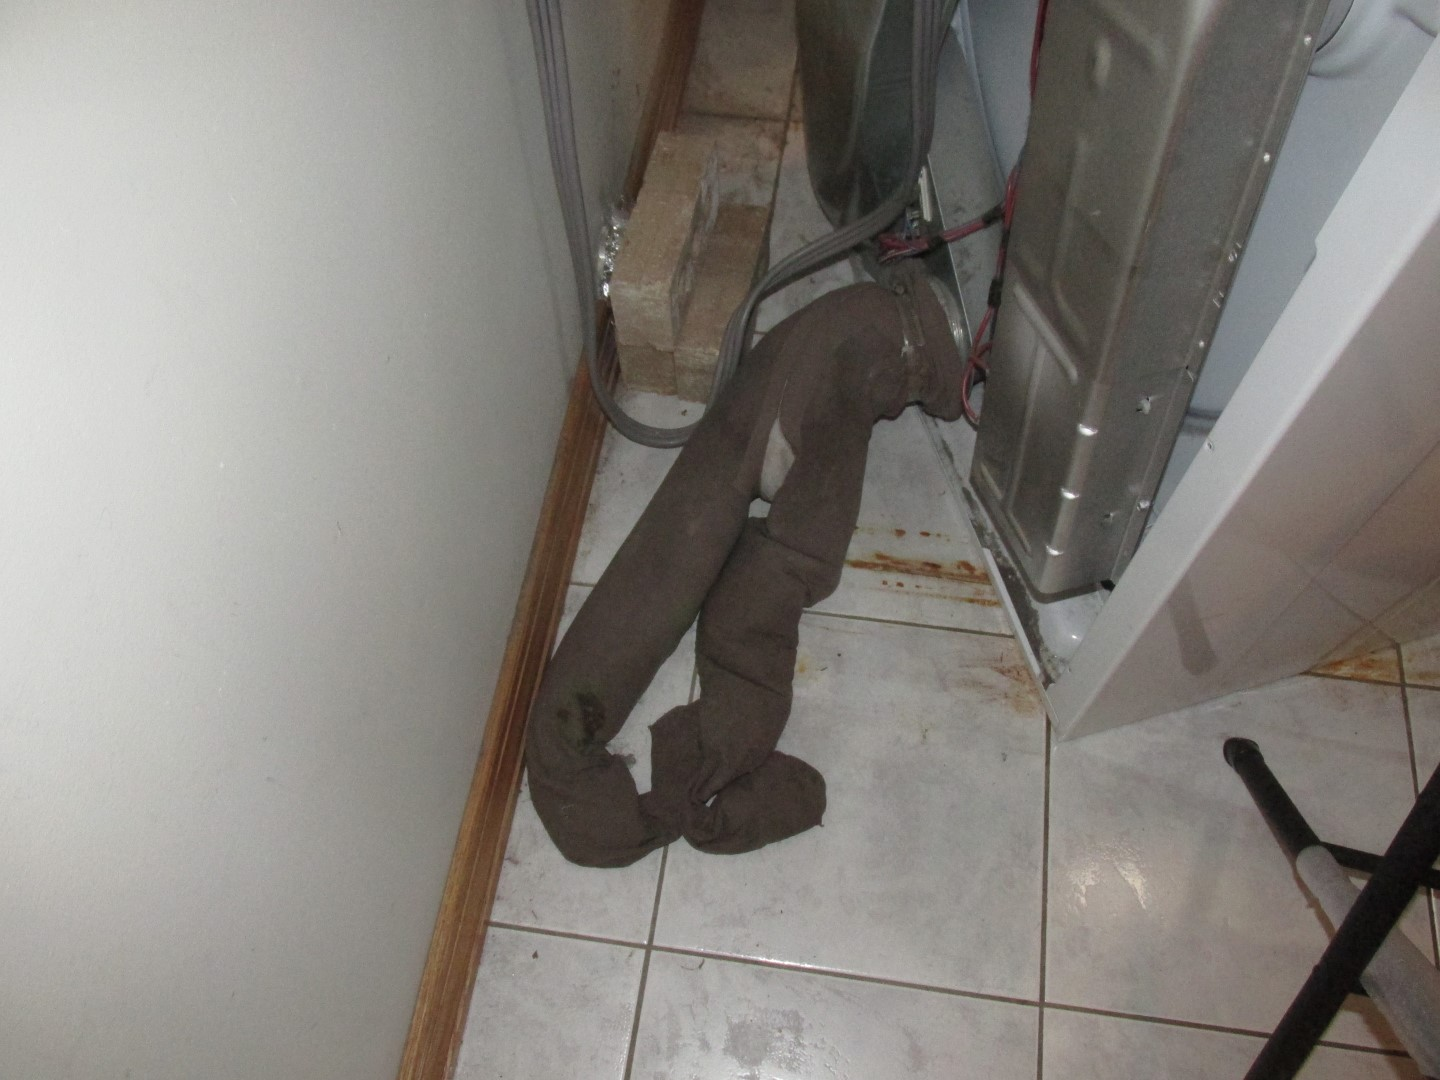 pantyhose dryer duct